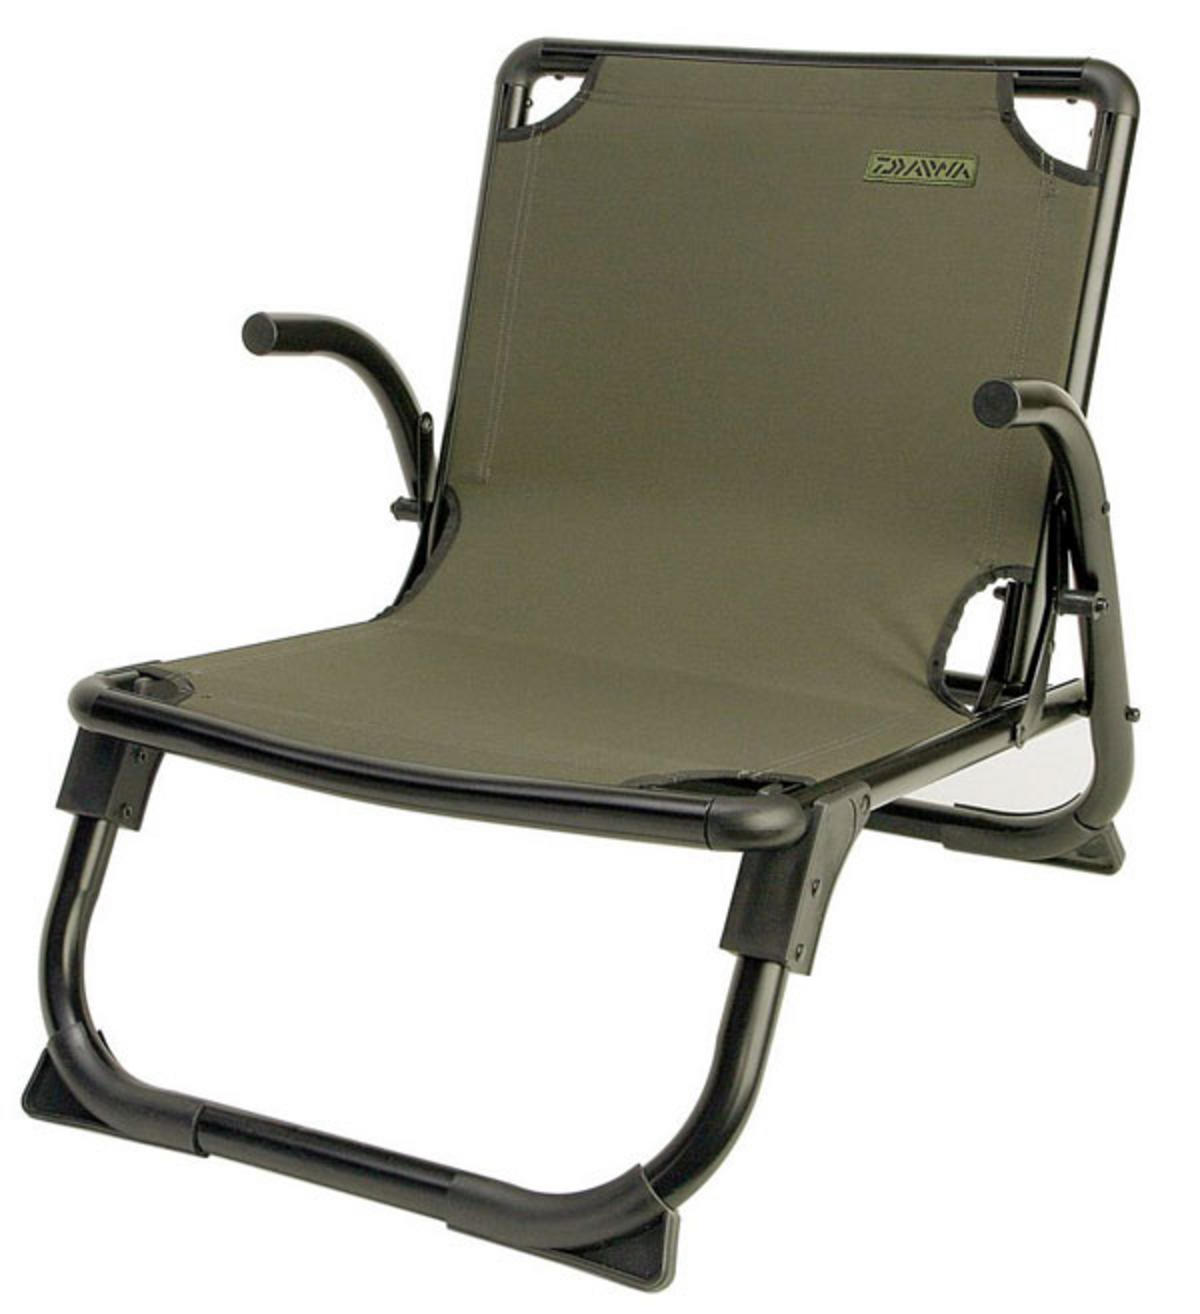 daiwa fishing chair deck plans brand new mission low dmlc1 chairs and bed